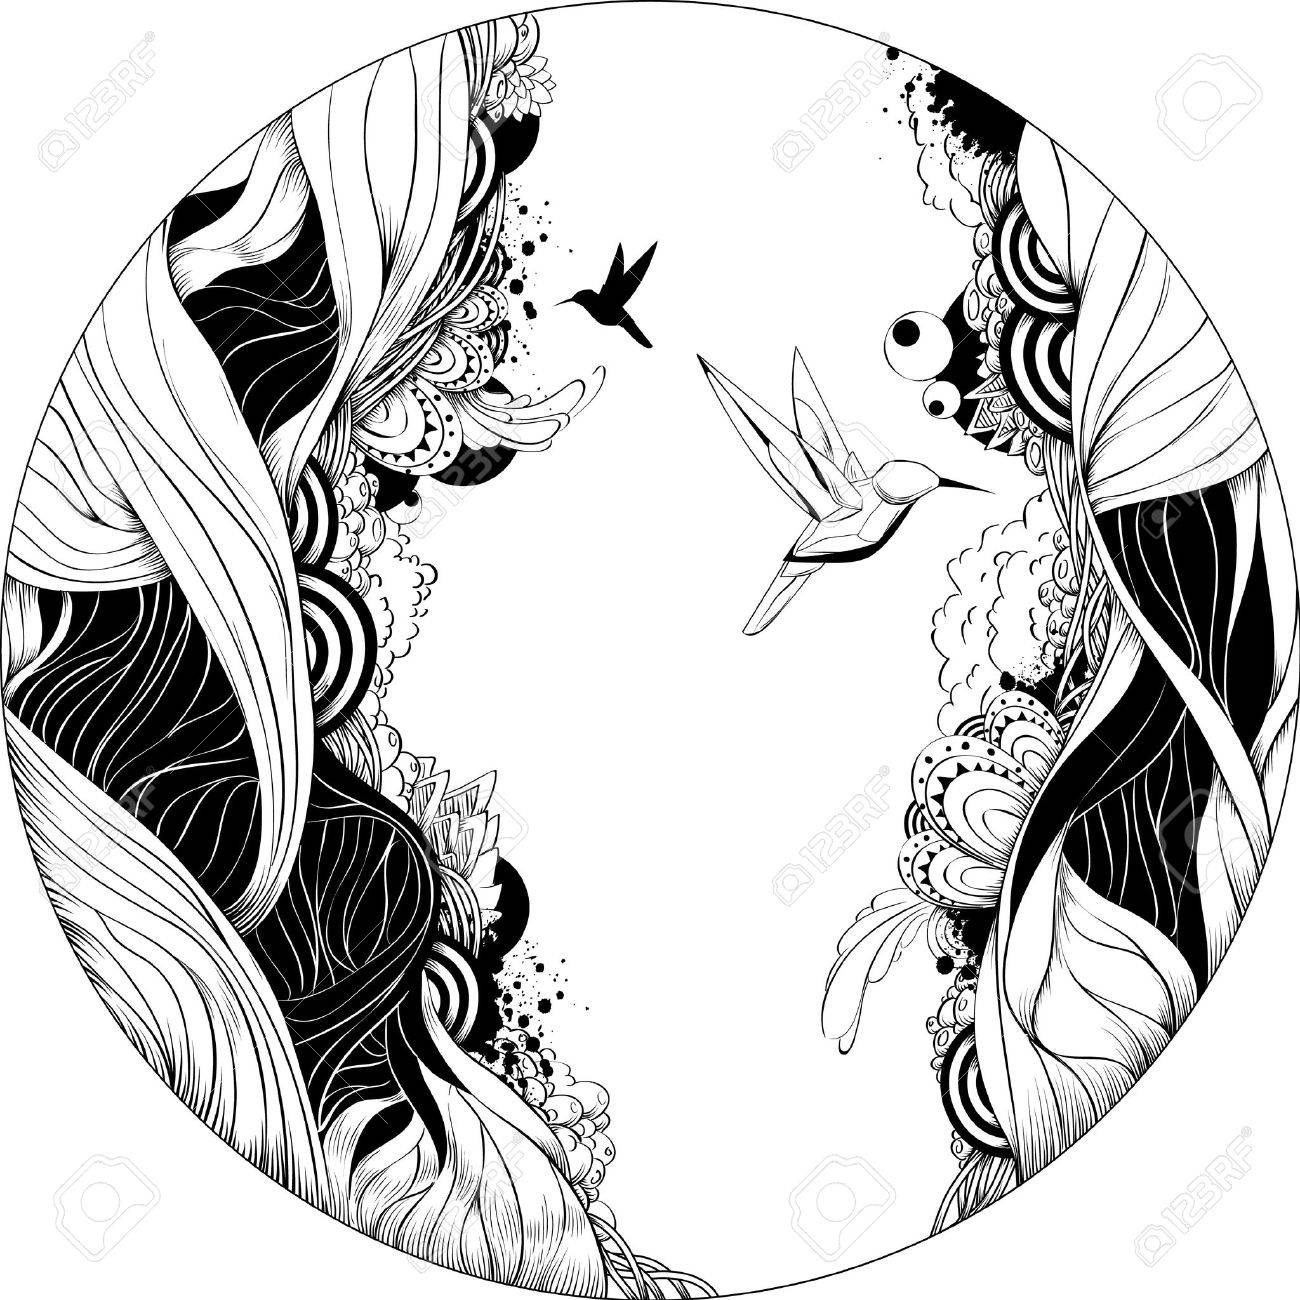 Bizarre vector illustration. Black and white ink sketch. Stock Vector - 6189058